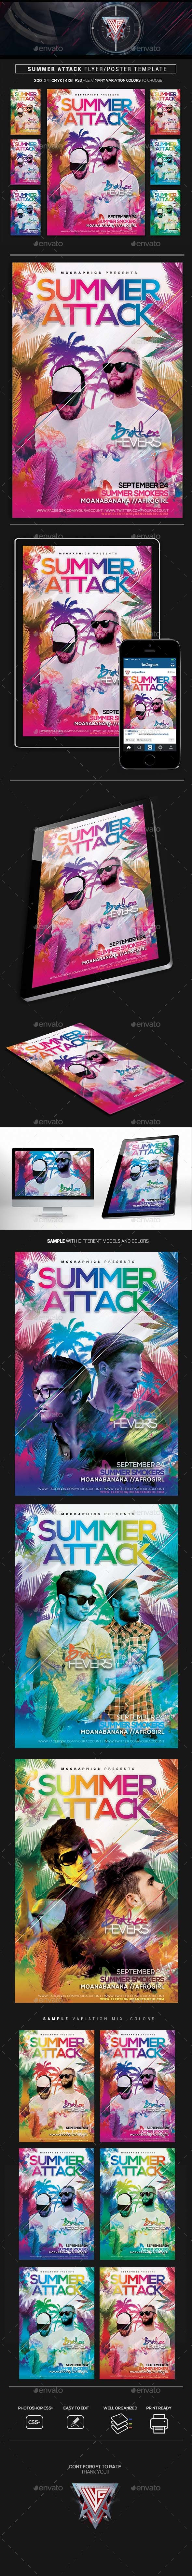 Summer Attack Flyer/ Poster Template - Events Flyers